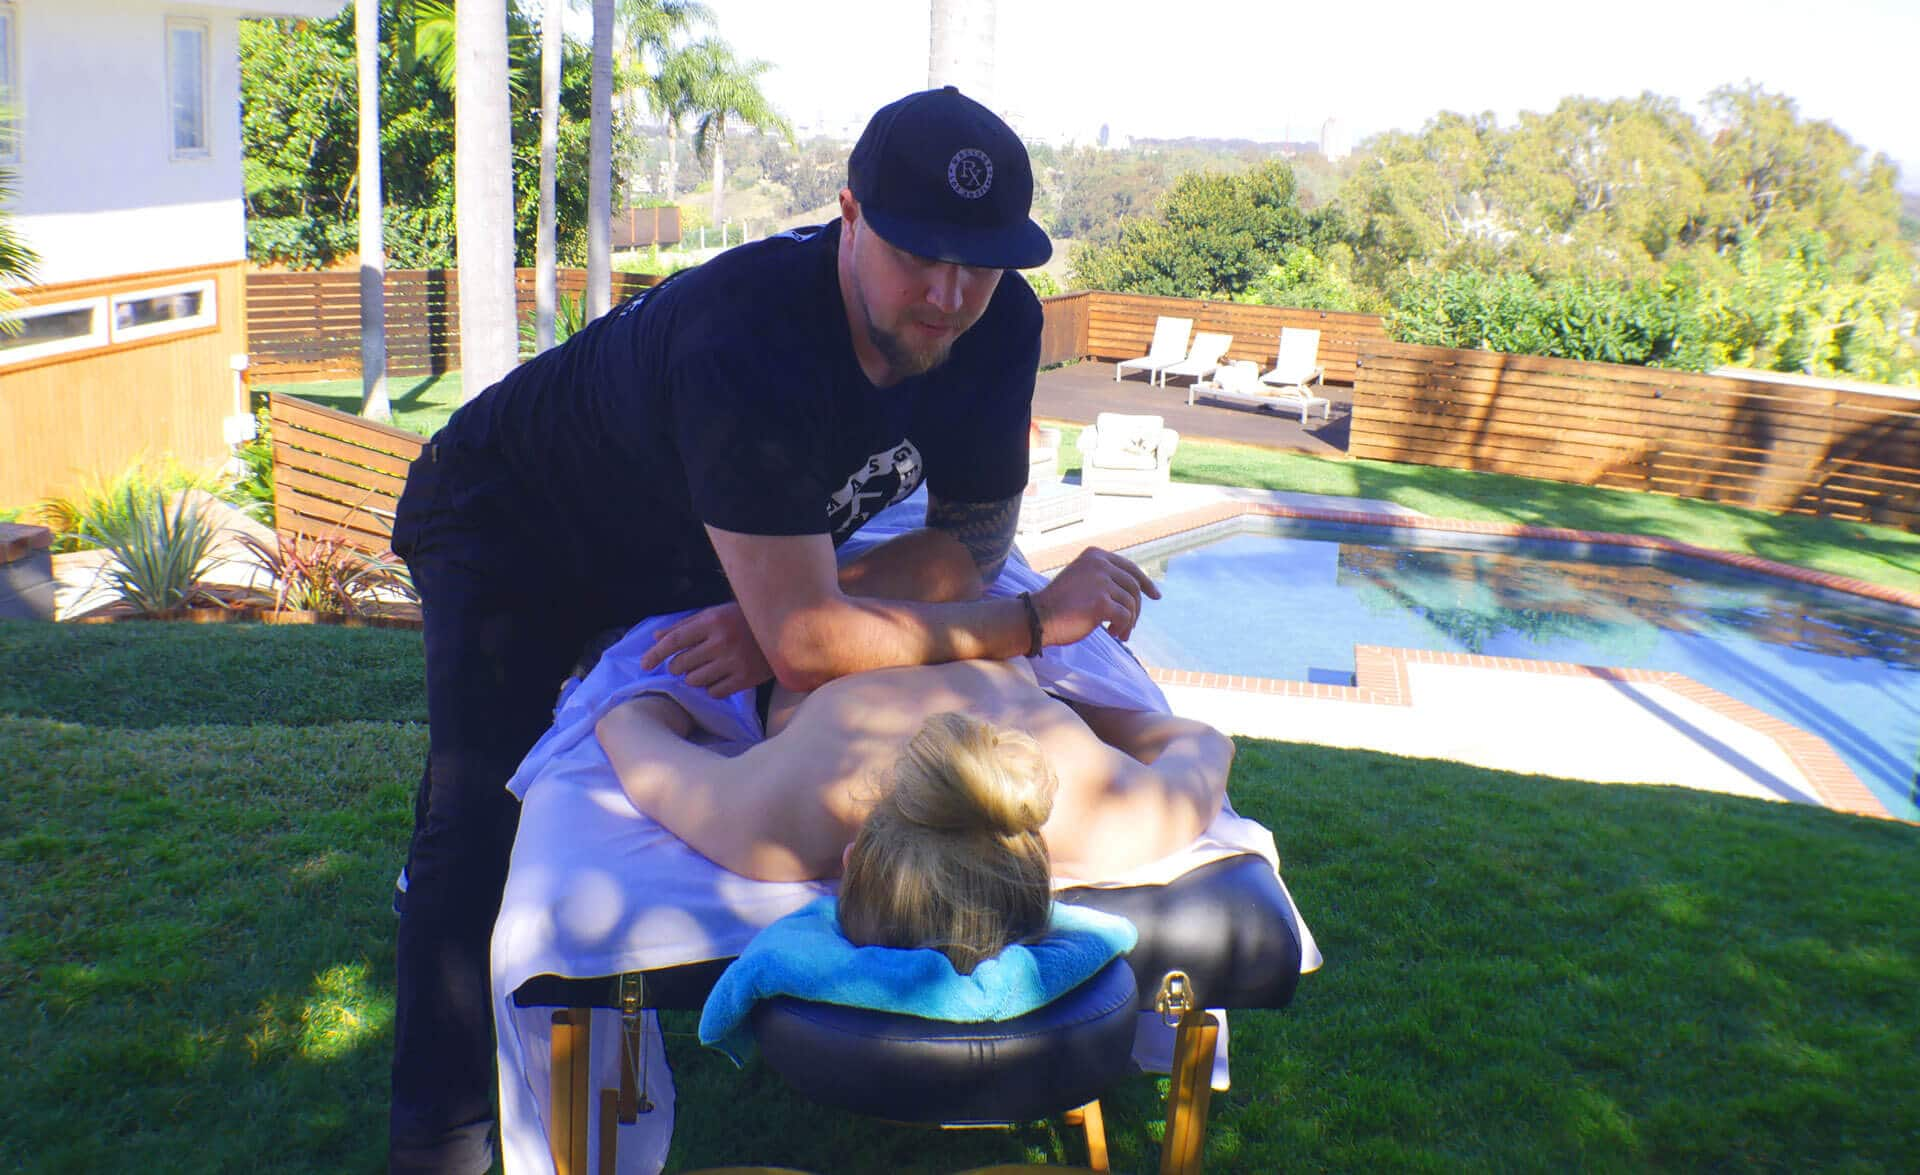 Looking For Massage To Me? Look Up Life Rx Wellness | Massage Rx